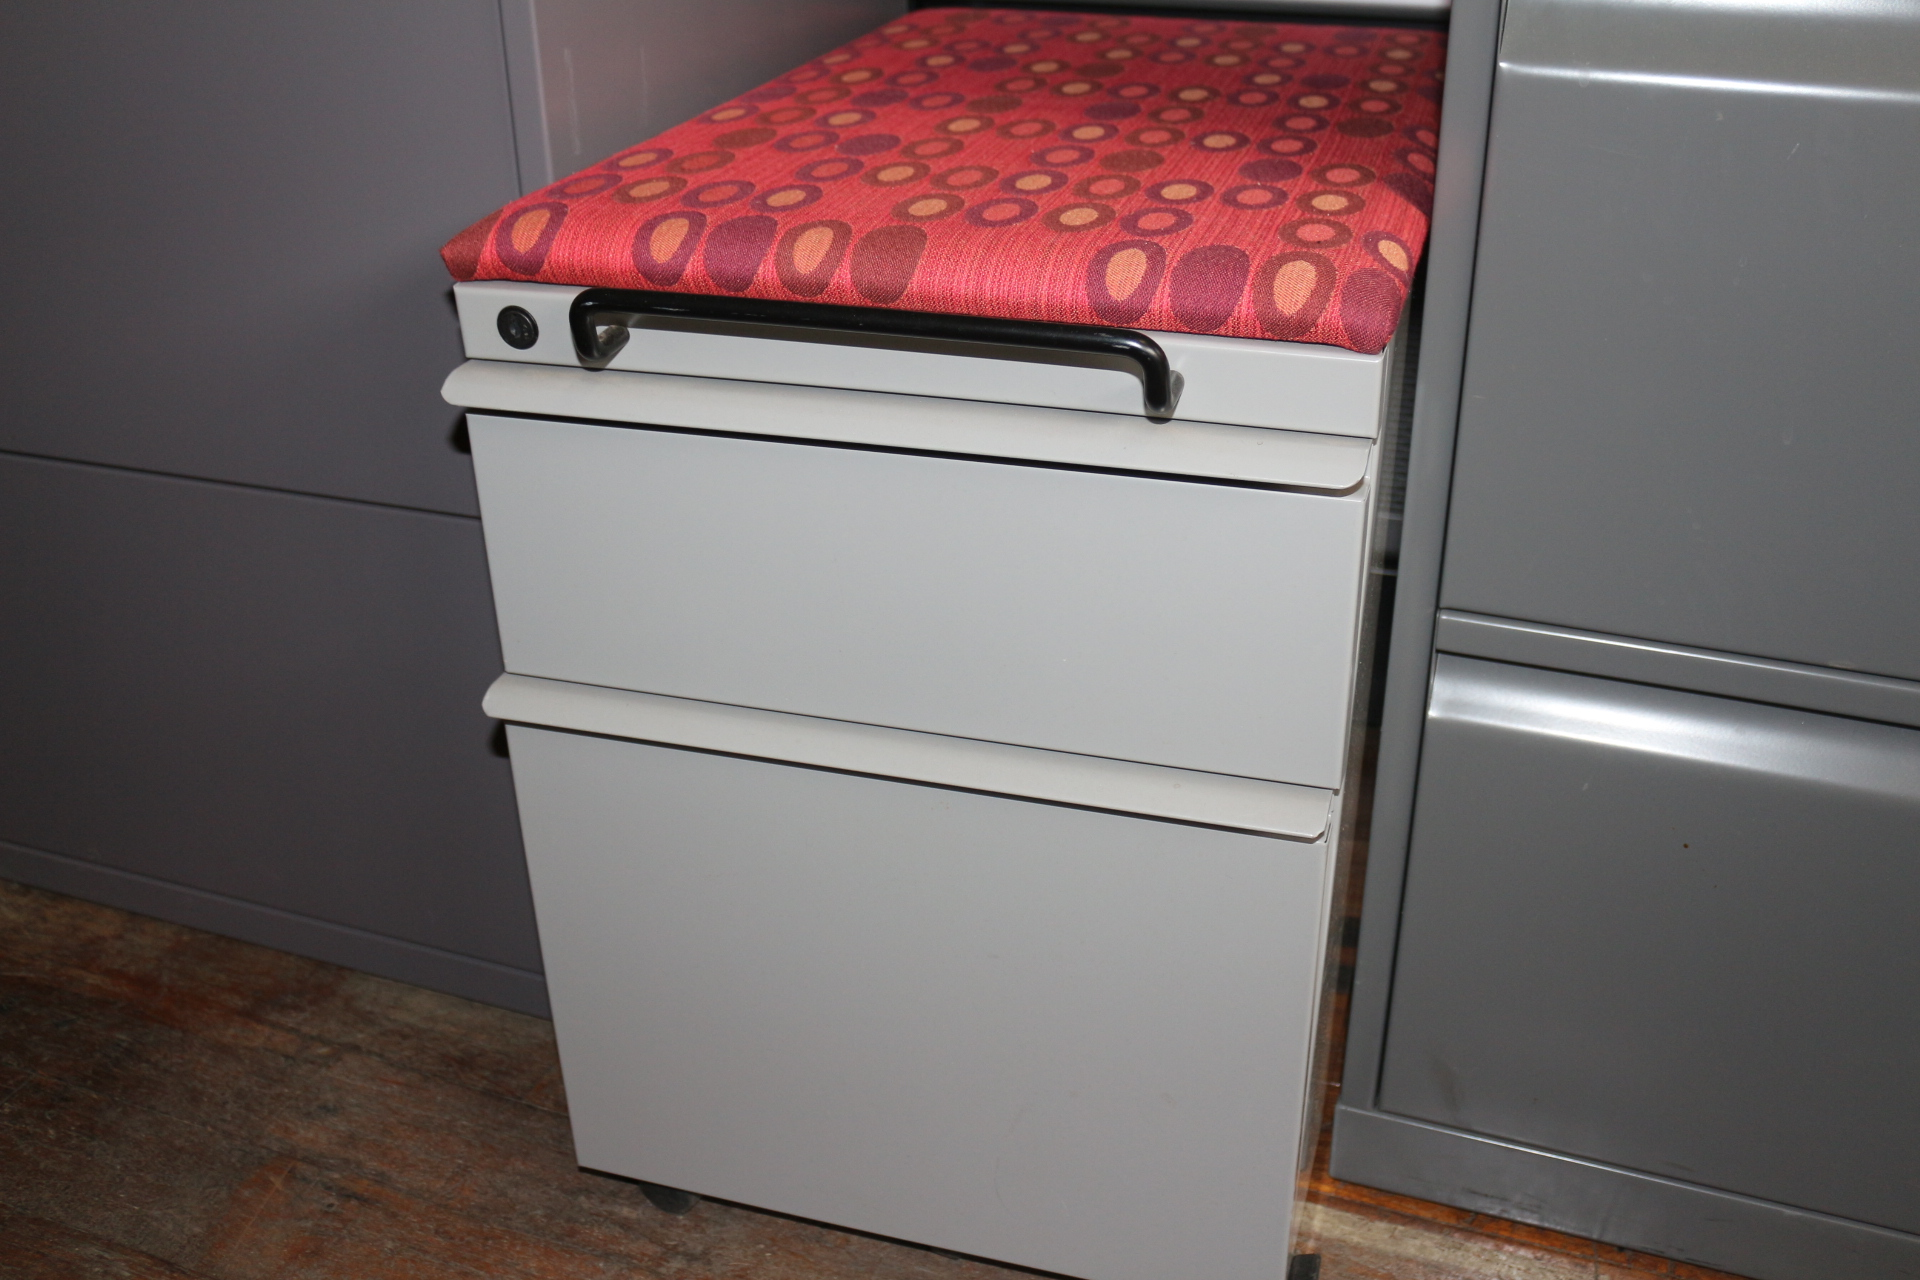 Knoll 2 Drawer Mobile Pedestal File Cabinet With Red Cushion U2022 Peartree  Office Furniture